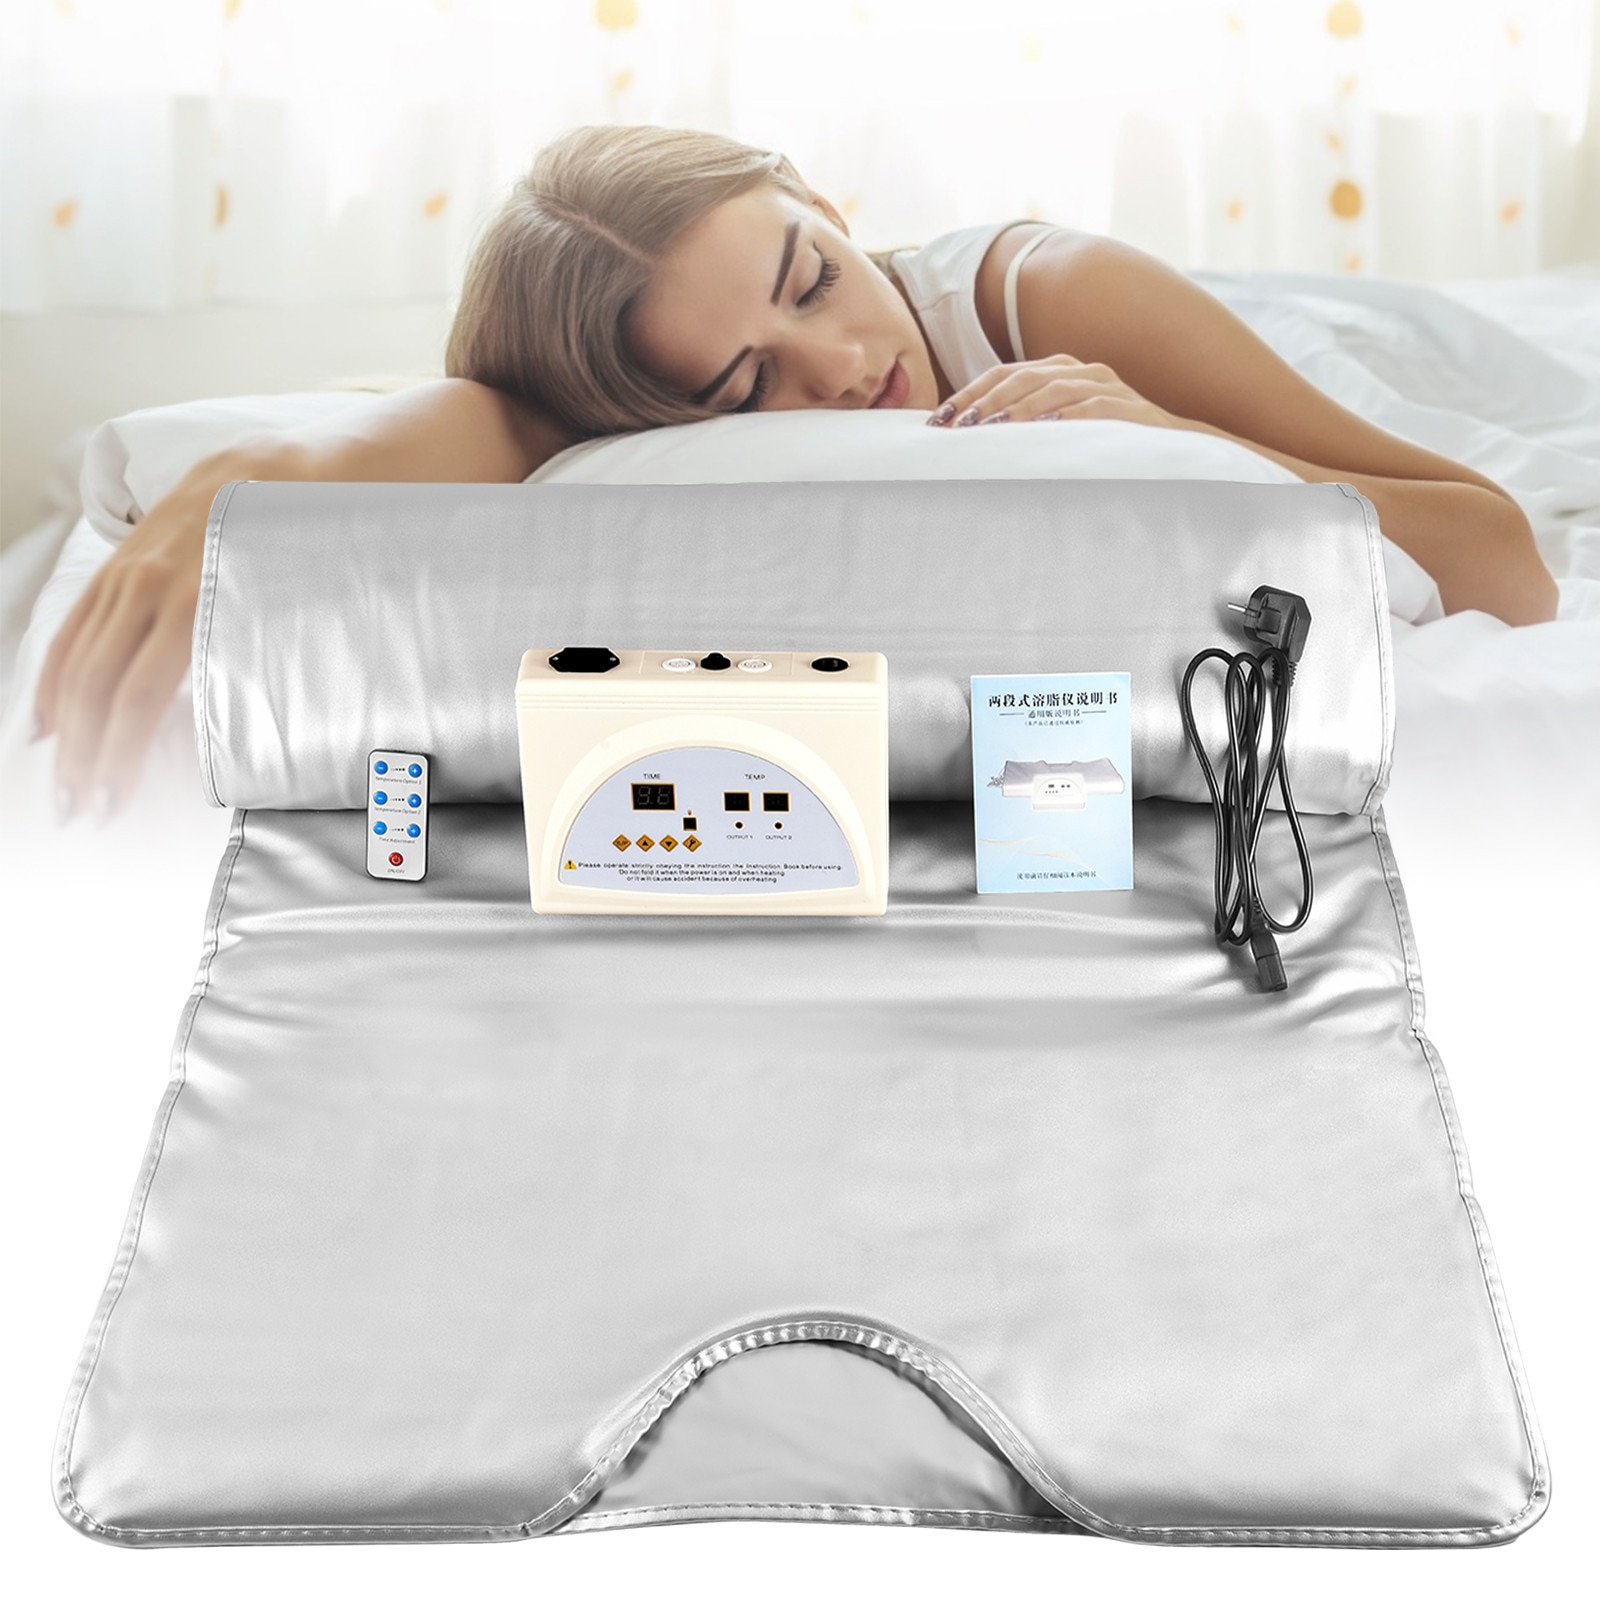 EU US 2 Zone Heating Sauna Blanket Romote Control Heating Blanket Body Weight Loss Sauna Detox Therapy Home Use